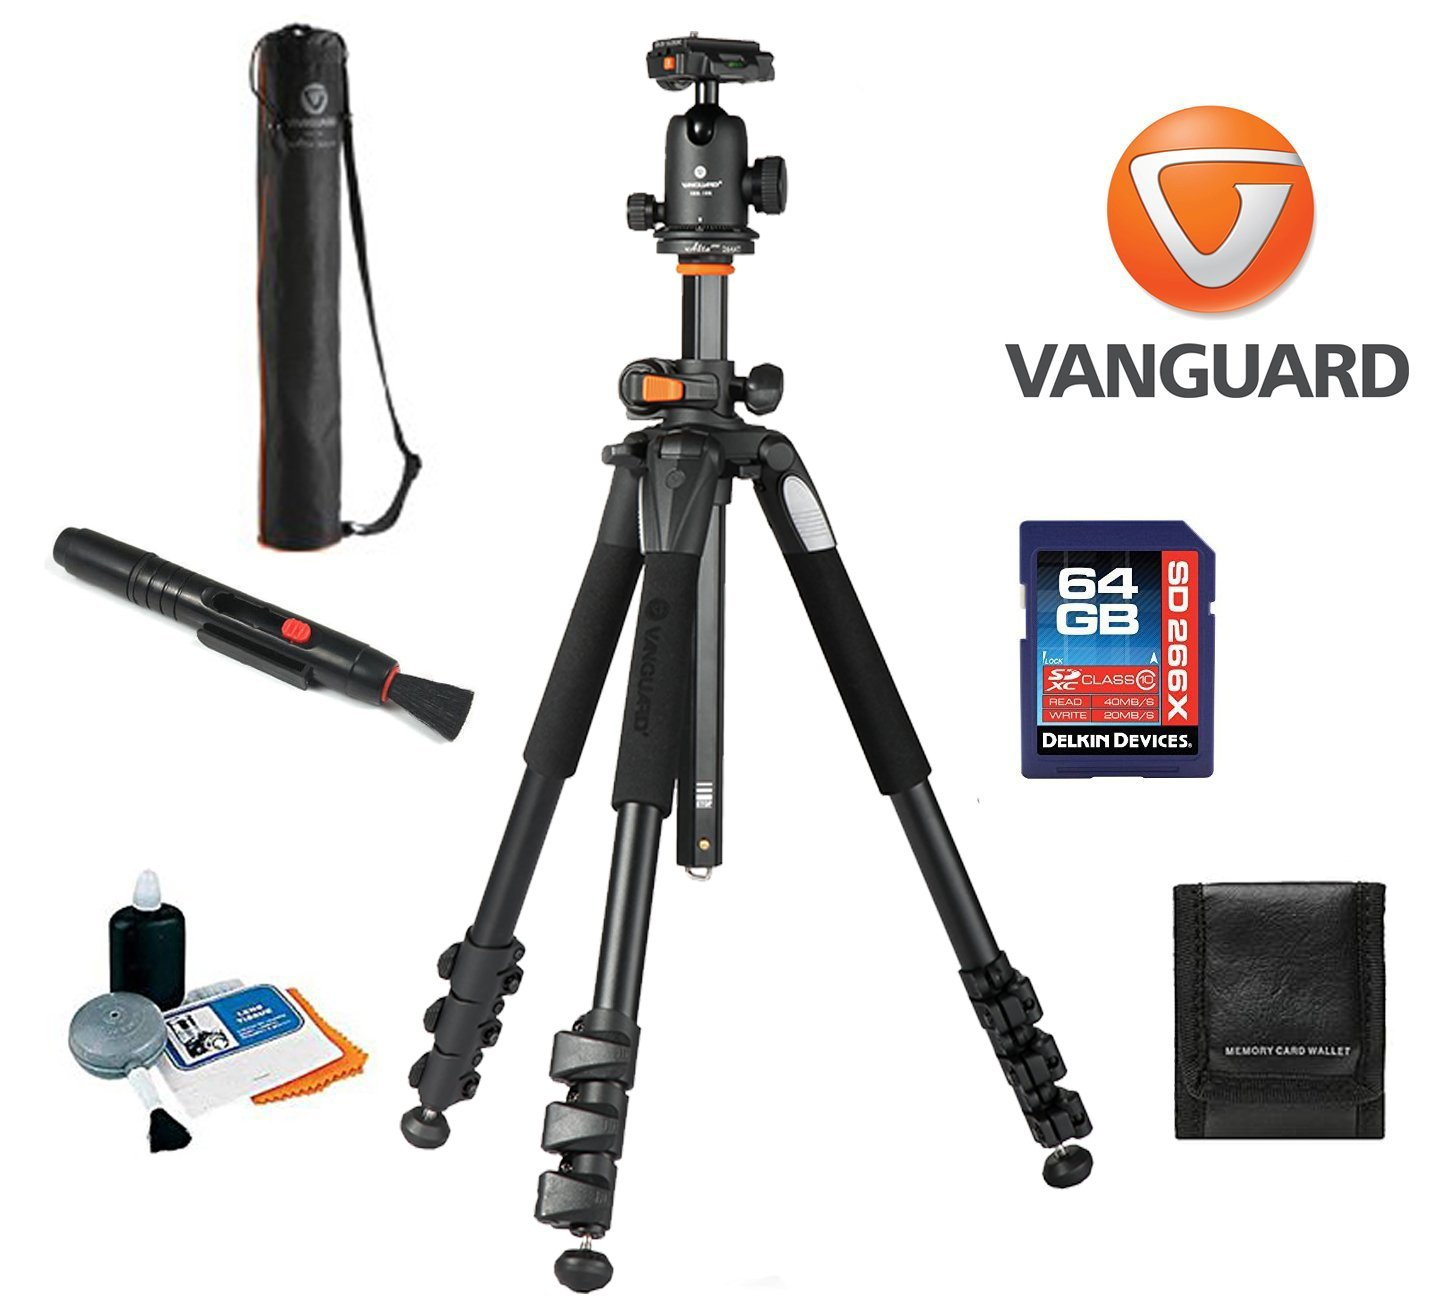 Vanguard Alta Pro 264AB 4-Section Aluminum Tripod with SBH-100 Ball Head + Vanguard Case, 64GB SDXC Card, Cleaning Kit, Lens Pen, Memory Card Wallet